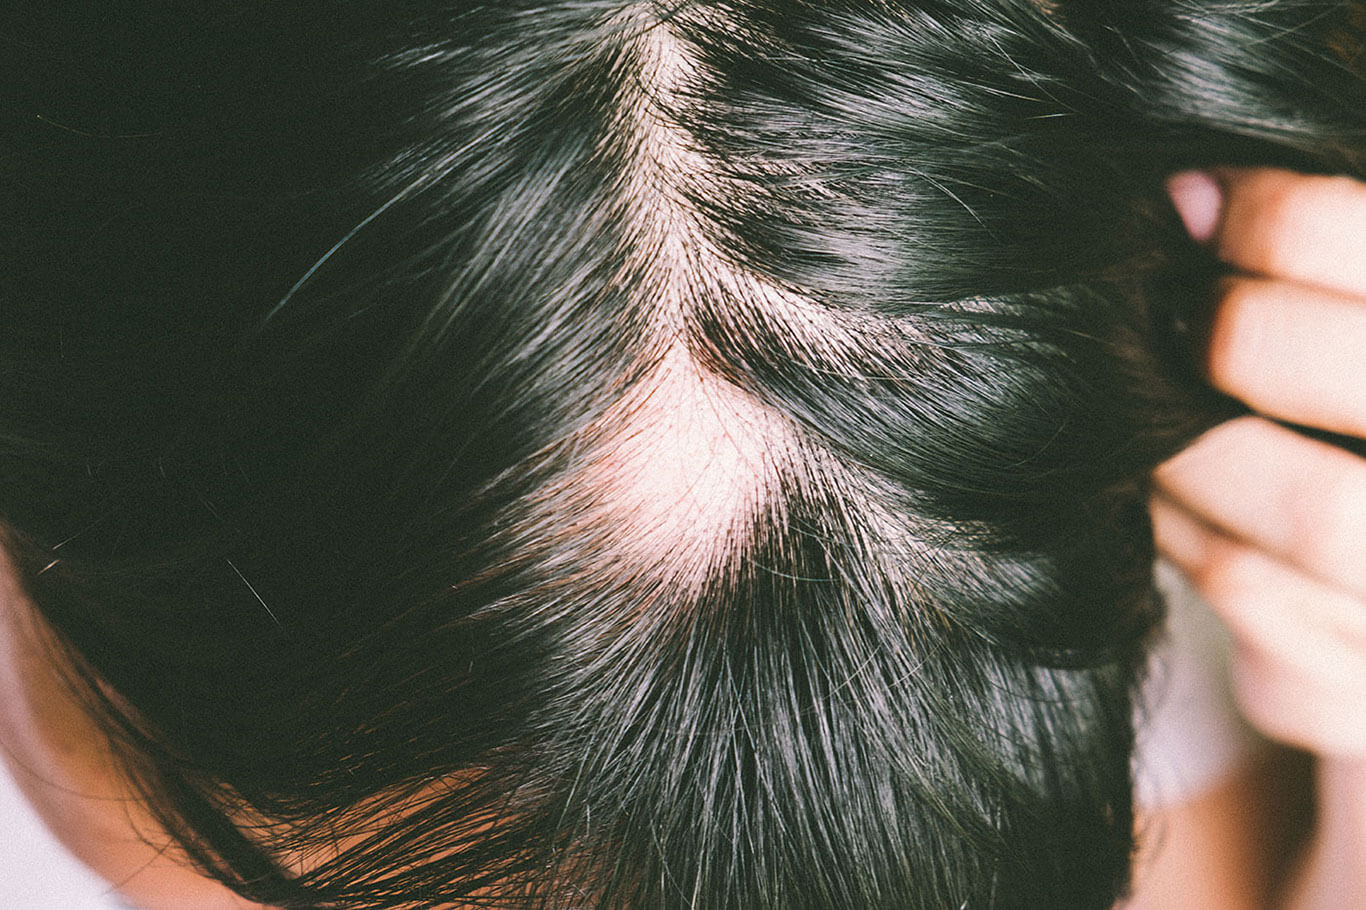 A close-up of the top of the head, showing a small, round patch of hair loss